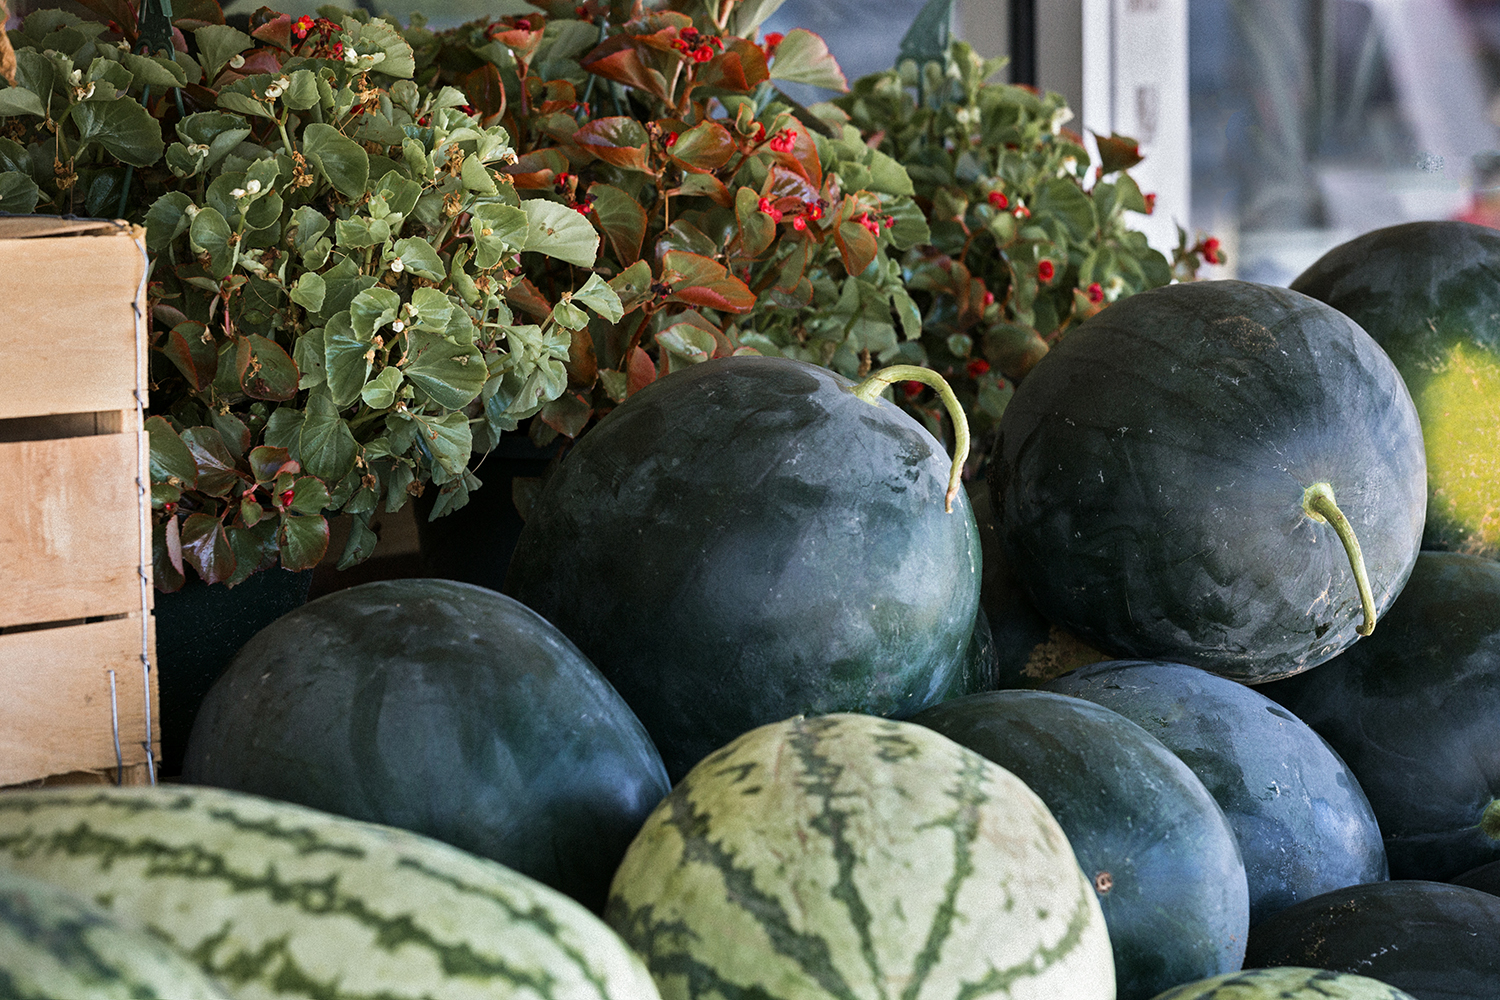 Doswell_Store_Watermelons_0004.jpg